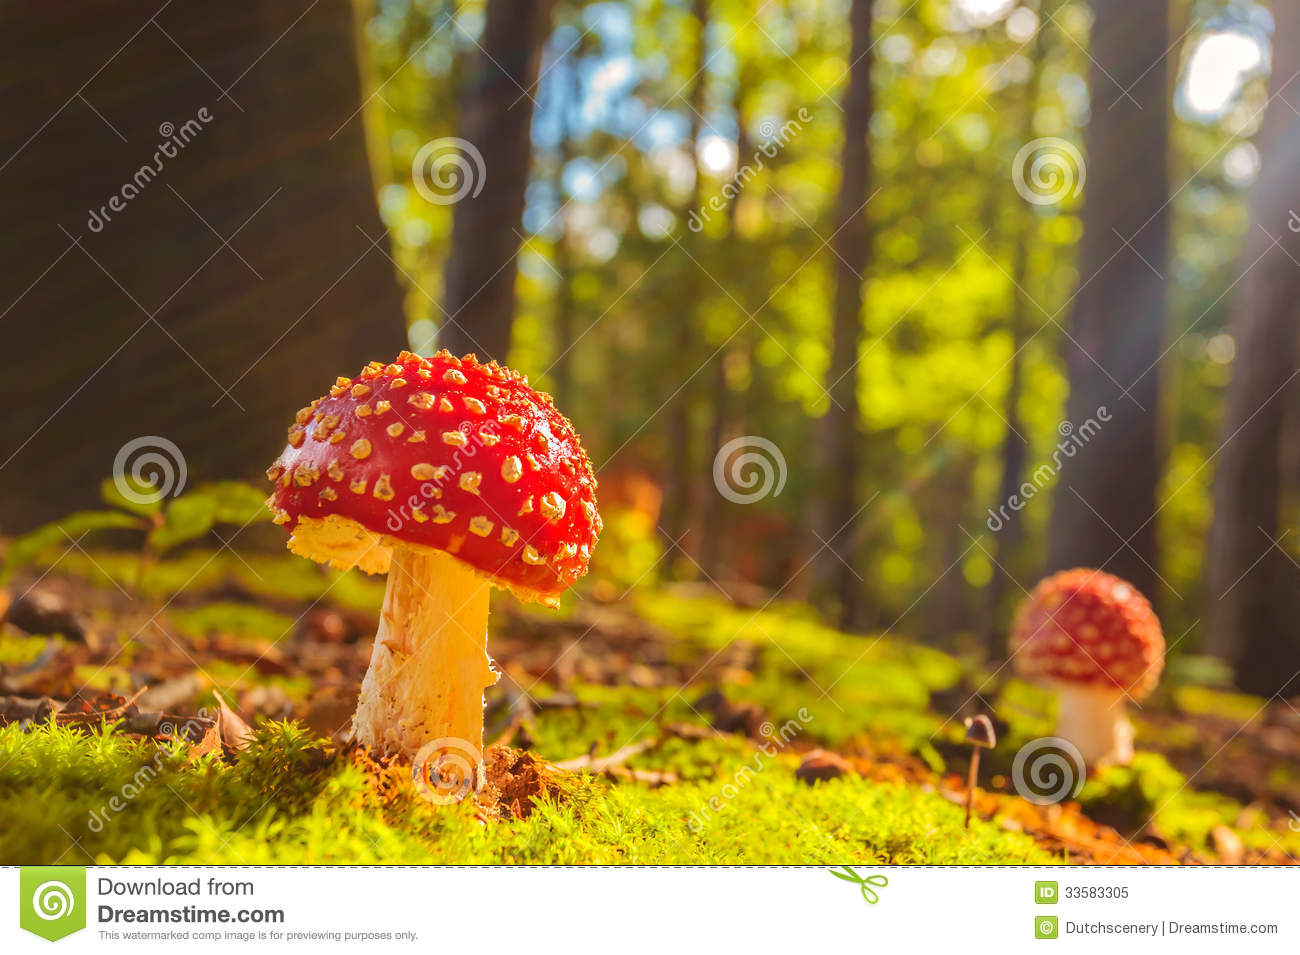 Download Sunny View Of Fly Agaric Mushrooms In A Forest Stock Image - Image of moss, magic: 33583305